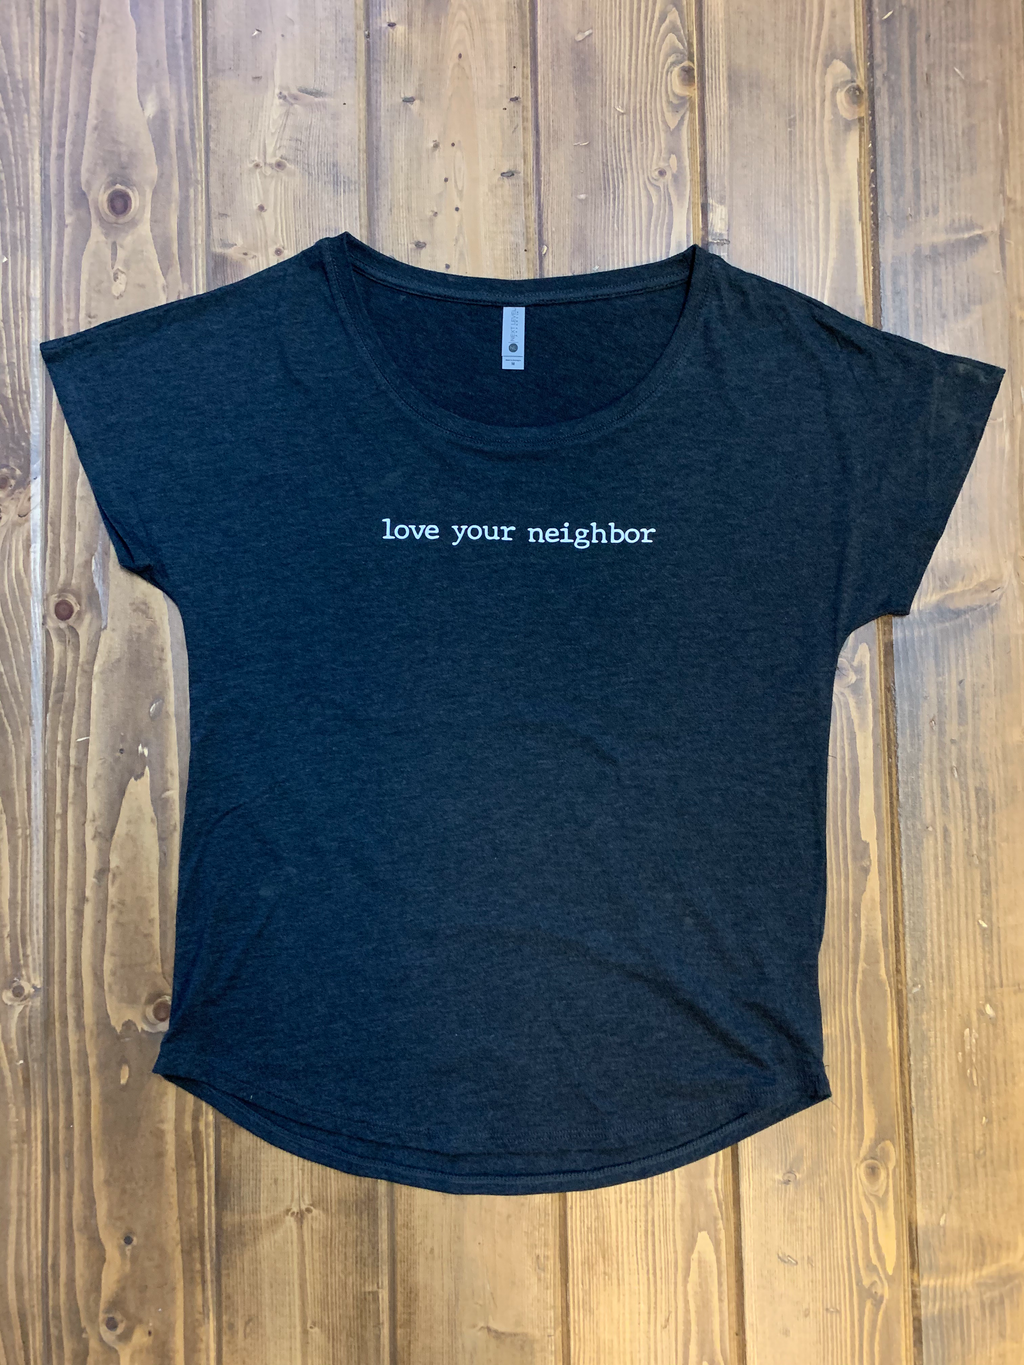 Love Your Neighbor - Women's Tee